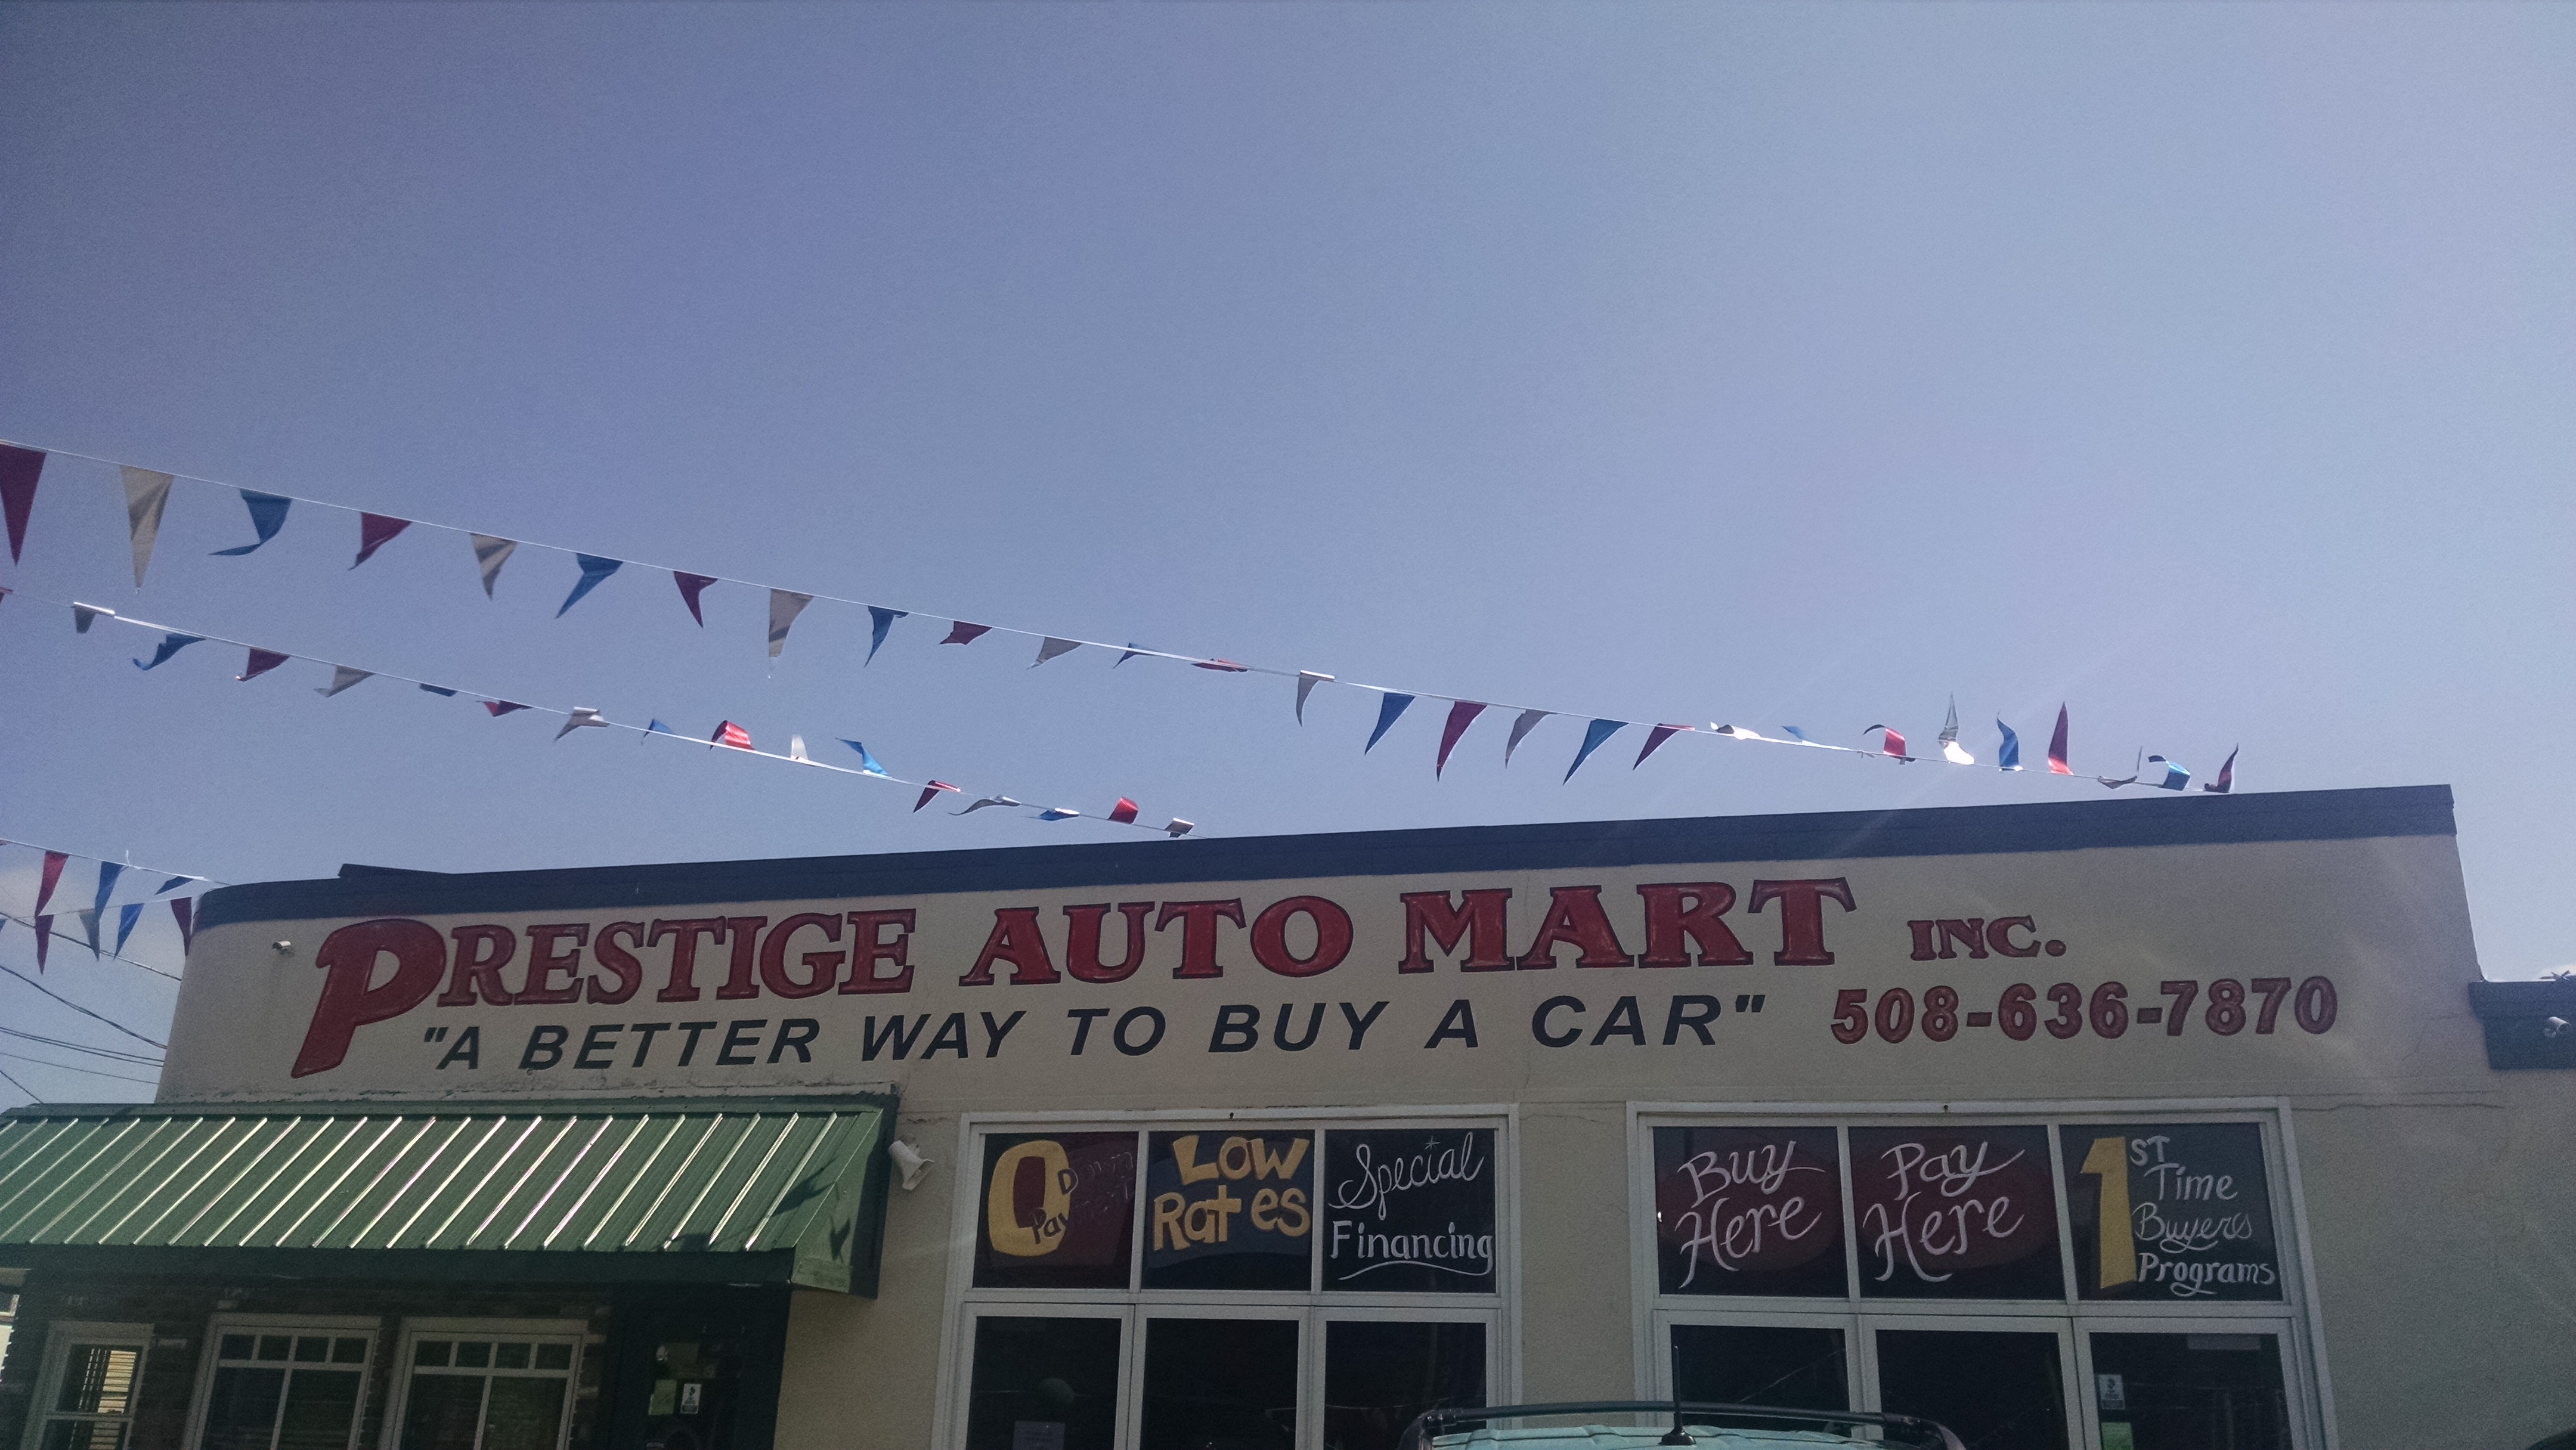 Prestige in east providence rhode island with reviews - Prestige Auto Mart